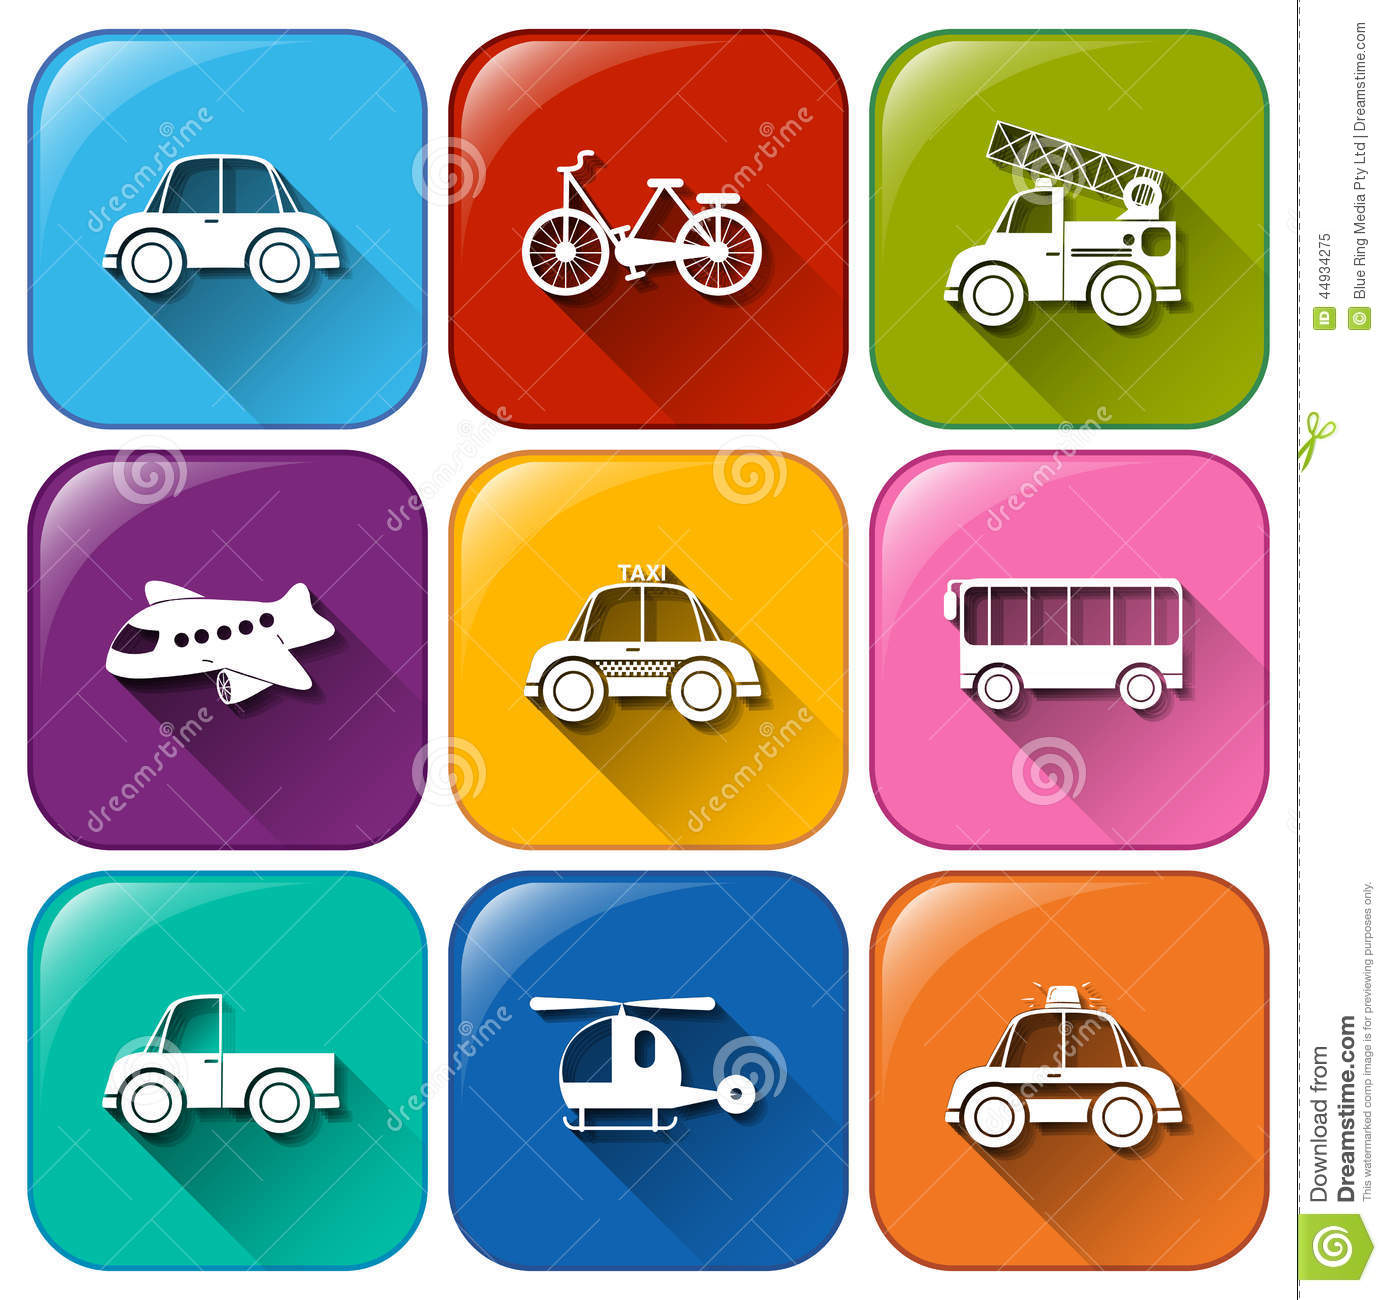 rounded buttons with the different types of transportation stock